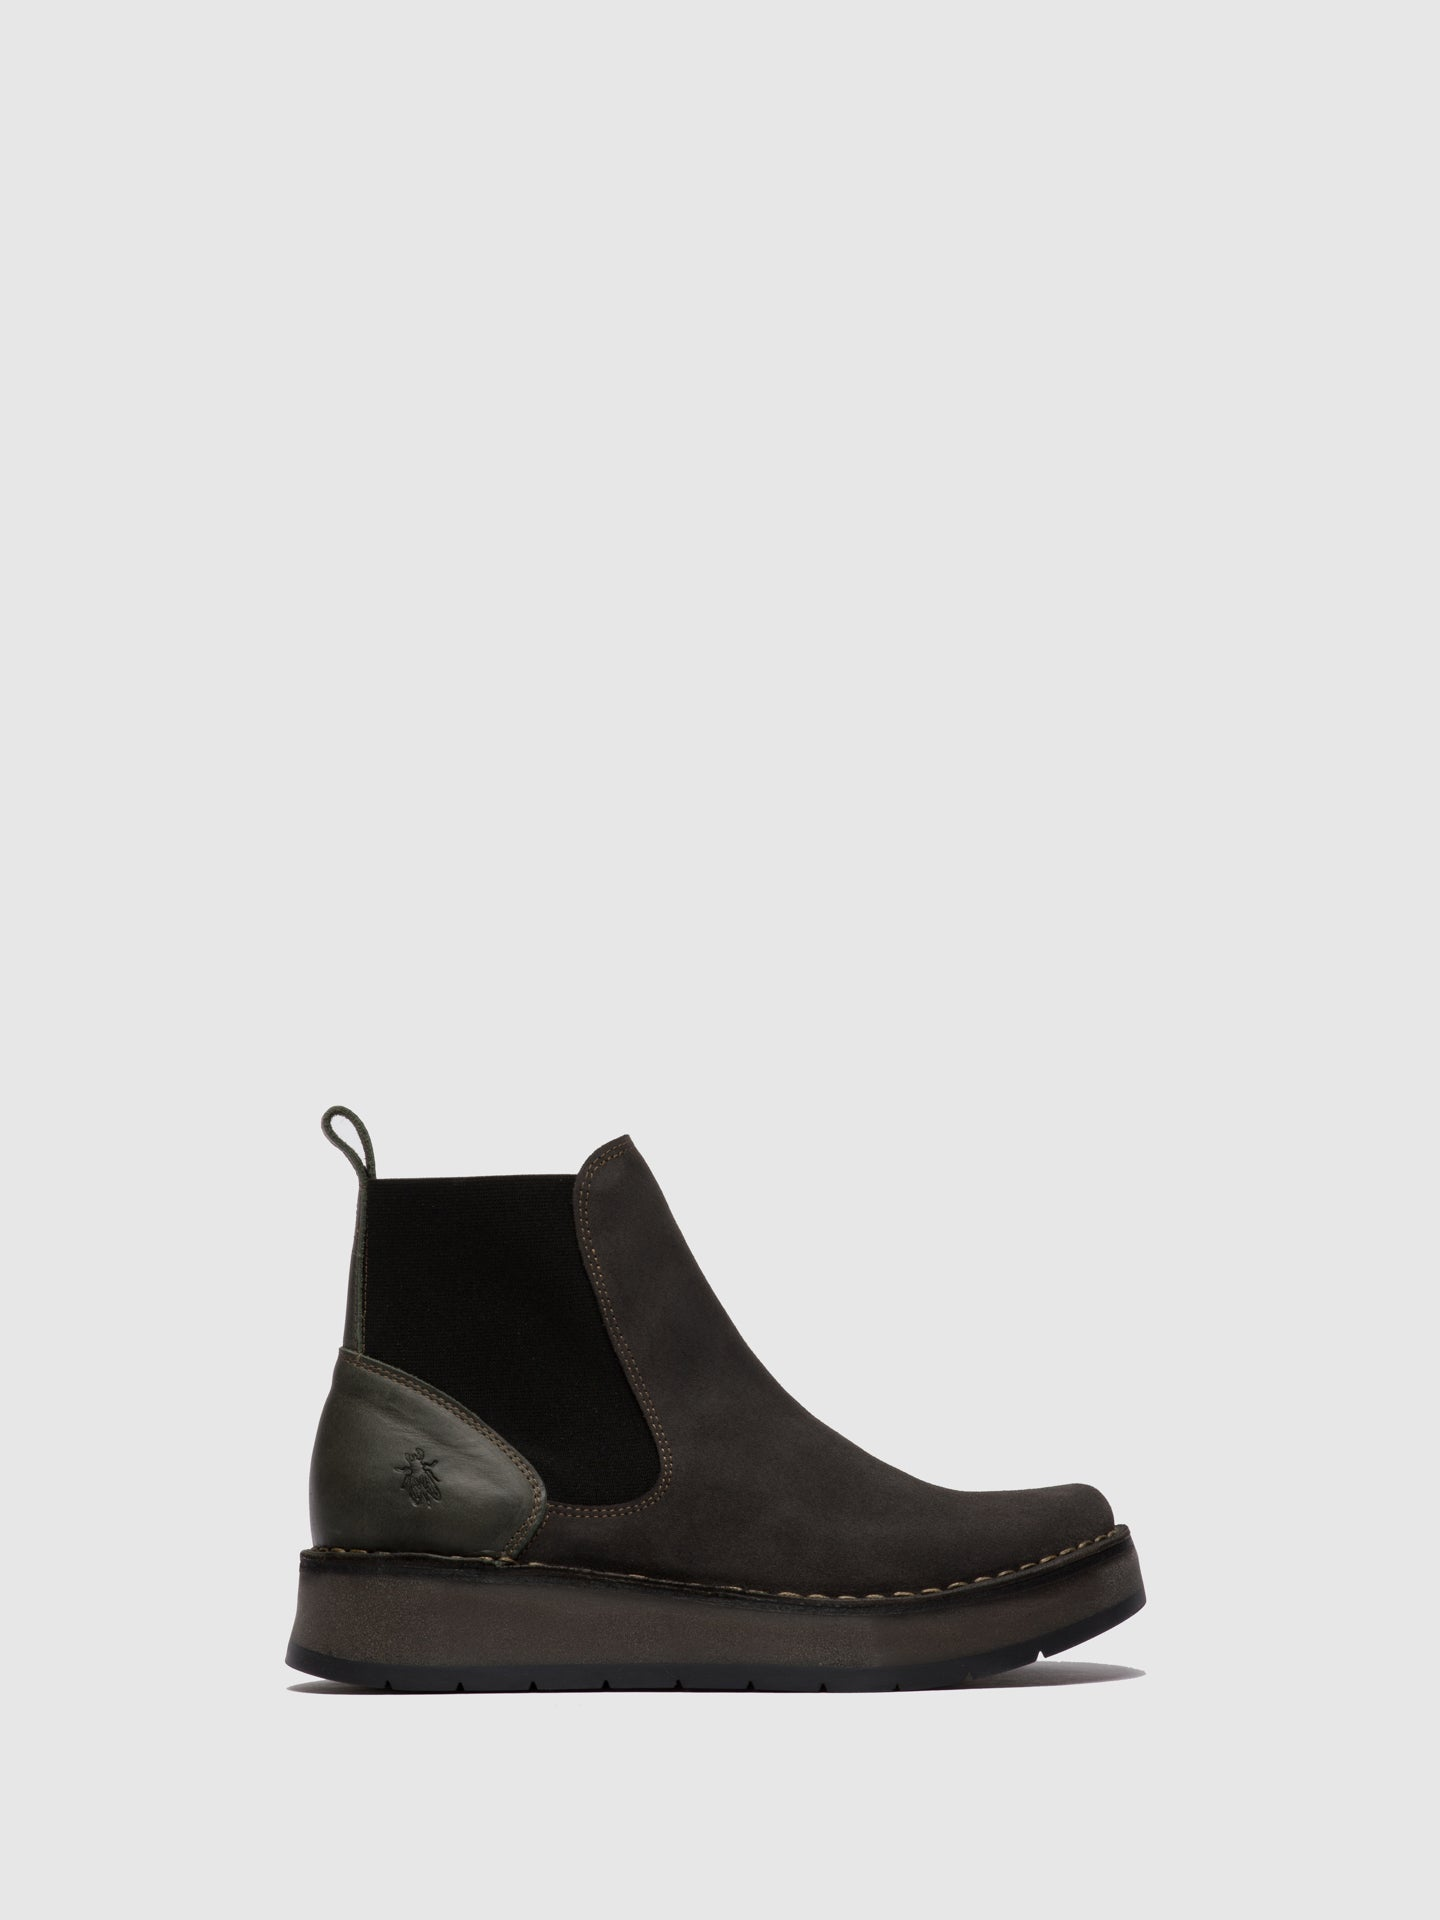 Fly London Chelsea Ankle Boots RAYA052FLY OILSUEDE/RUG DIESEL